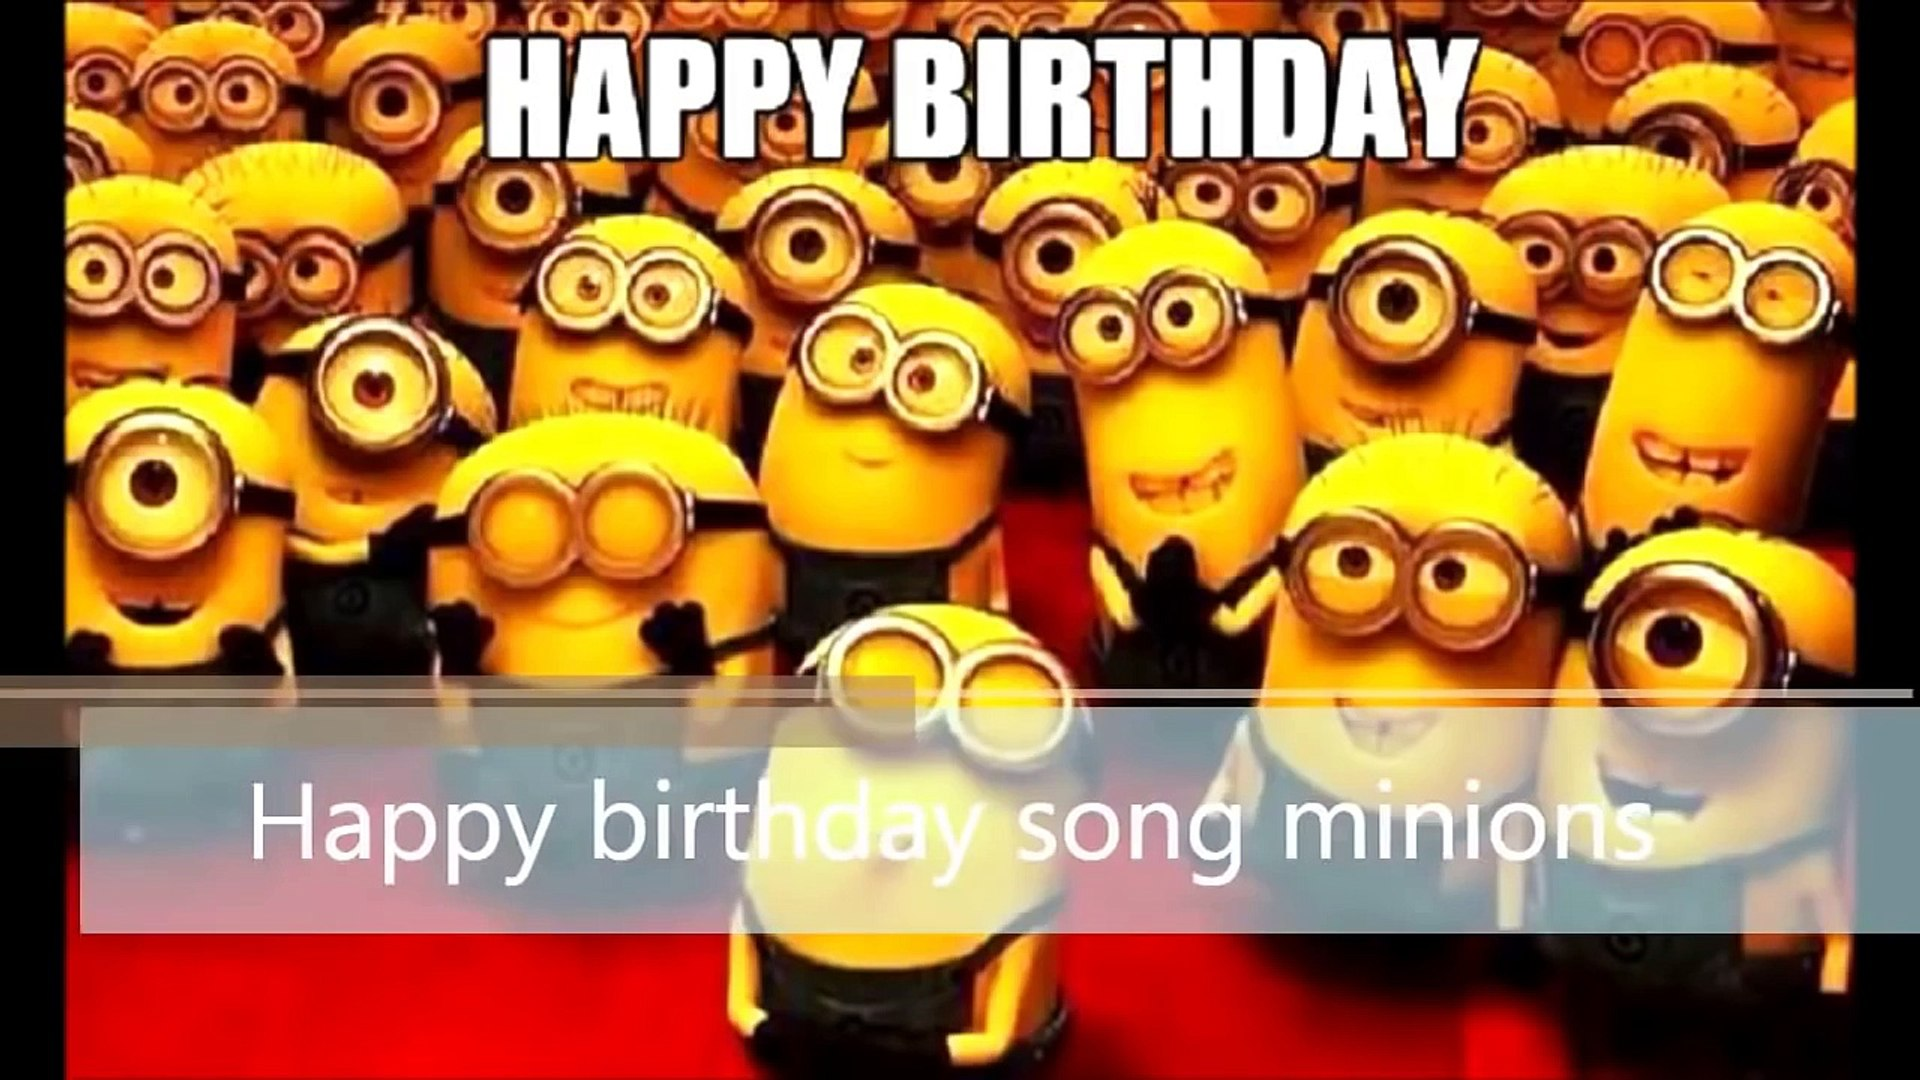 Happy birthday Minions Song 2 in 1 | funny happy birthday song